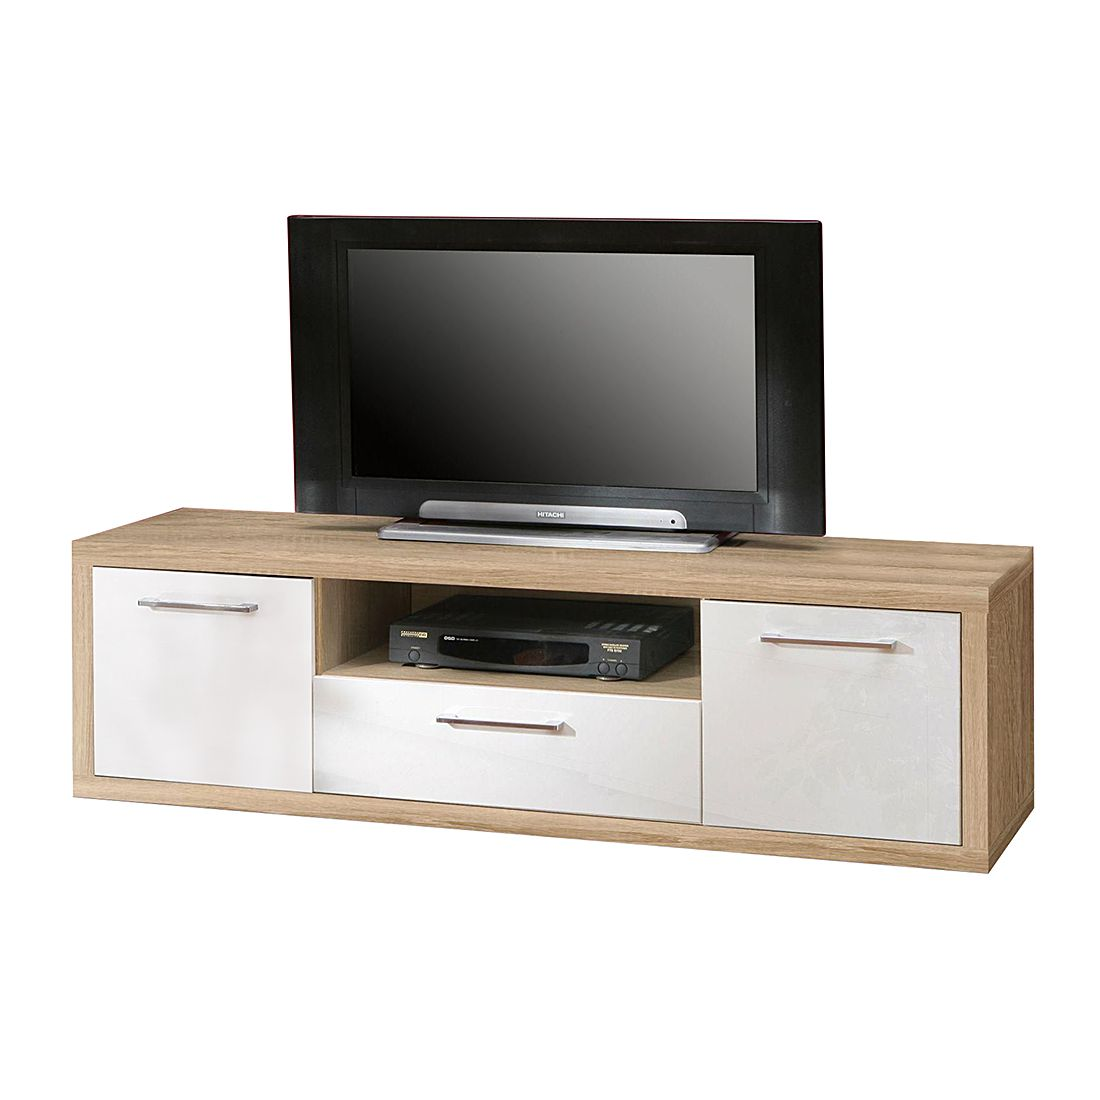 tv lowboard fresno ii sonoma eiche dekor hochglanz wei. Black Bedroom Furniture Sets. Home Design Ideas